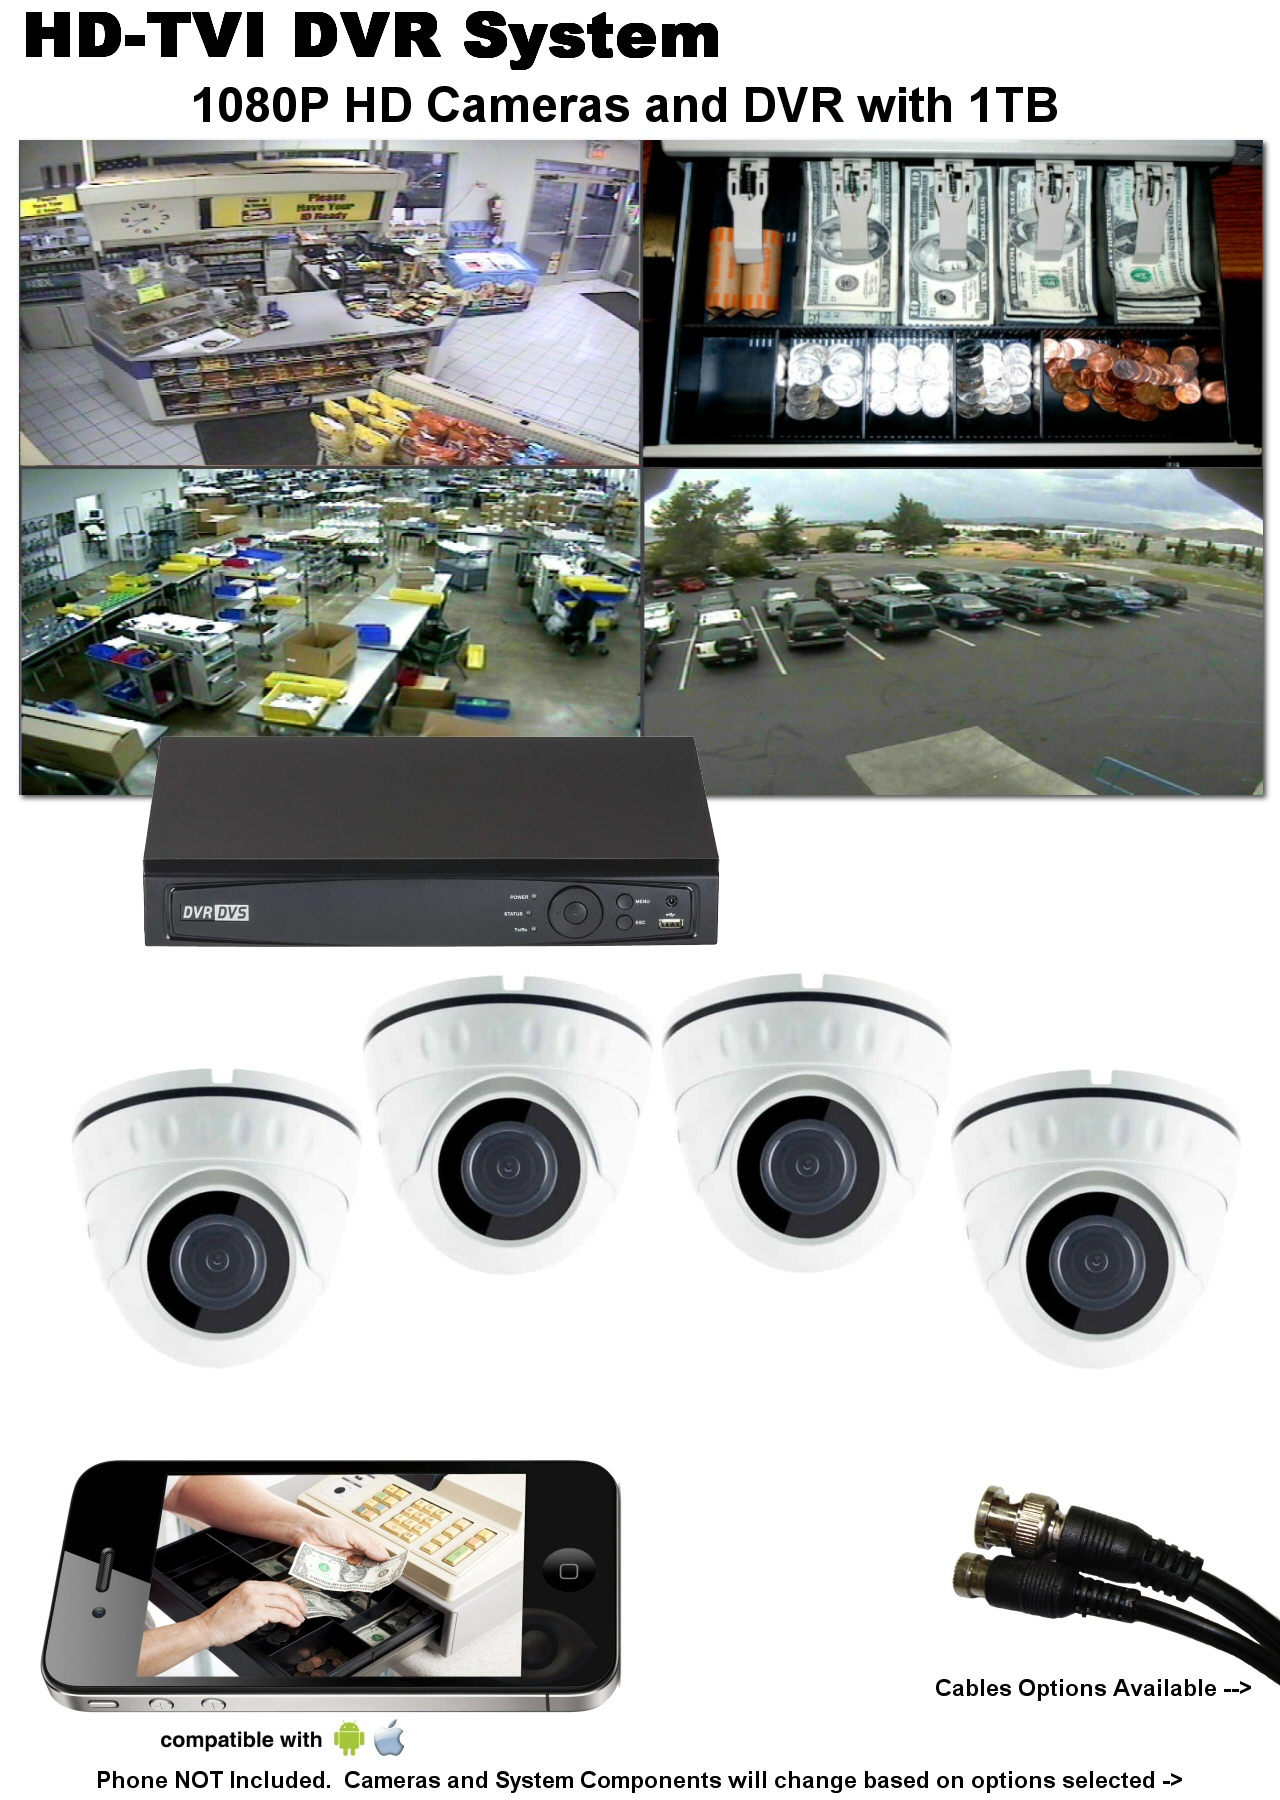 4 Camera HD TVI DVR System for Home or Business